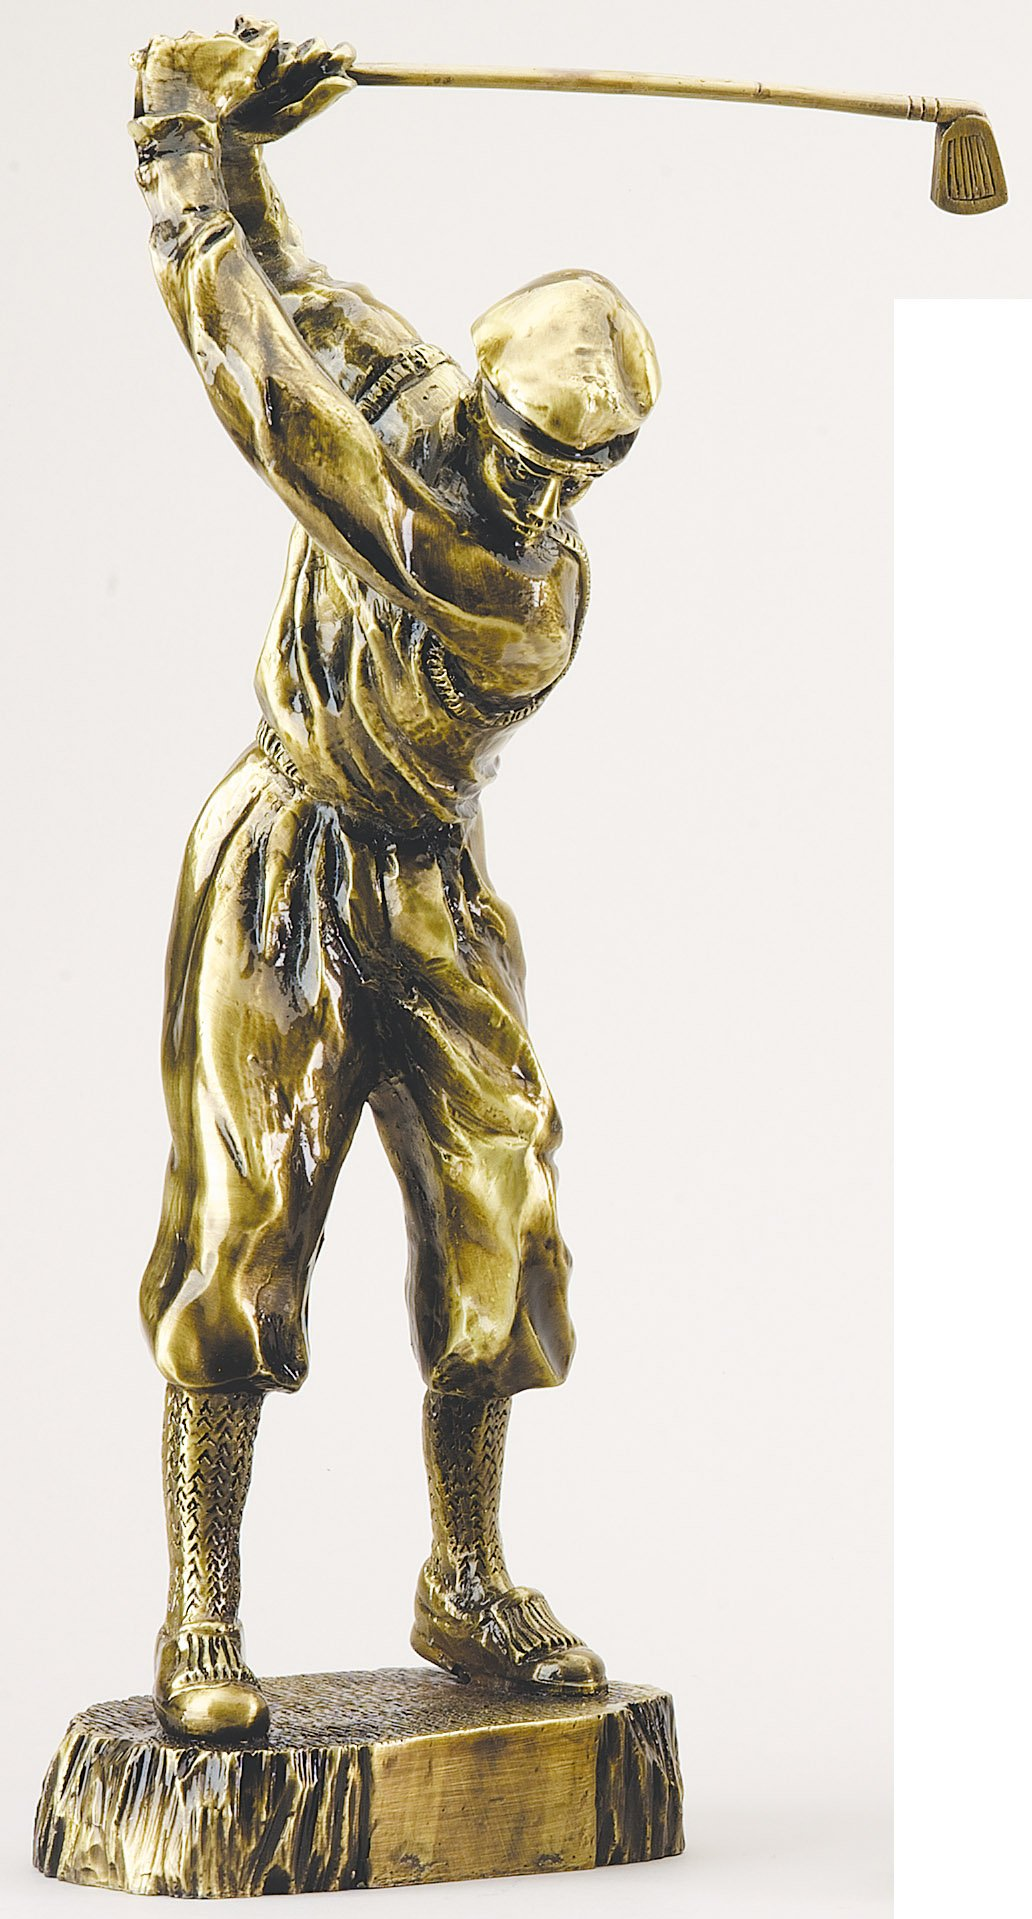 "Gold Cast Metal Finish - Classic Golfer    X-Large:  RFG175 - 17"" tall -  $131    Large:  RFG150 - 15"" tall -  $106    Medium:  RFG125 - 12.5"" tall -  $67"